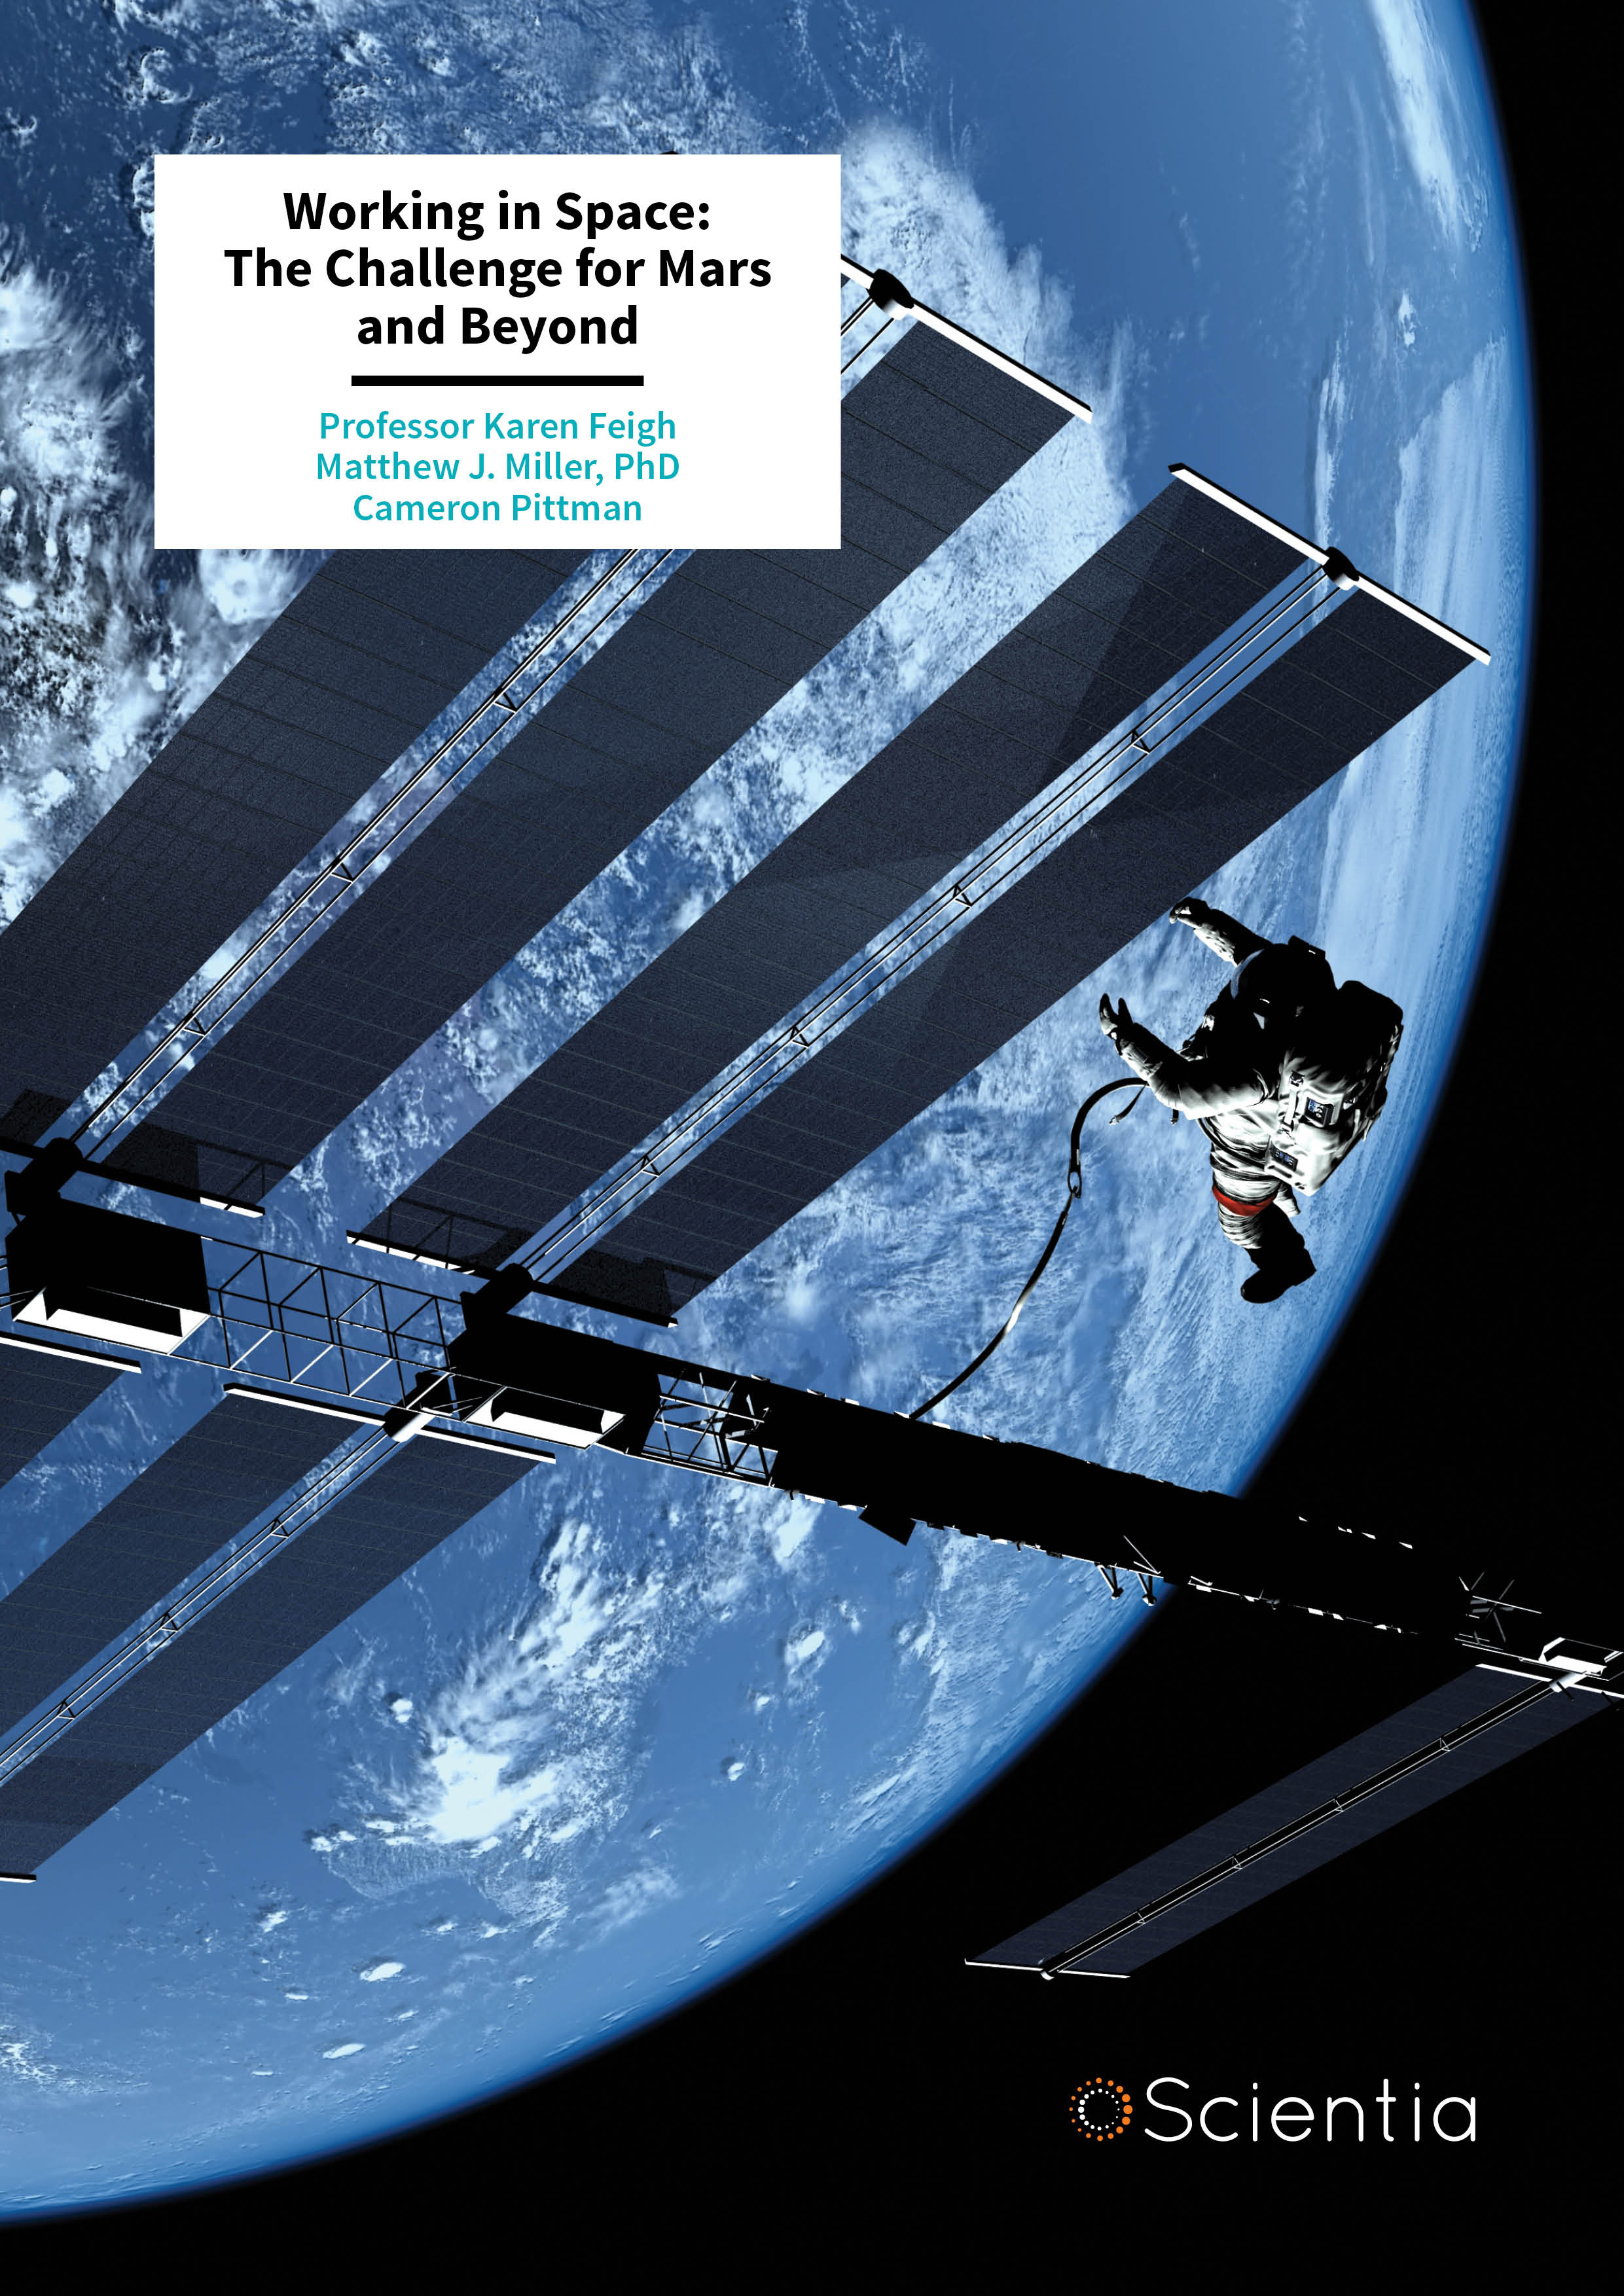 Working in Space: The Challenge for Mars and Beyond